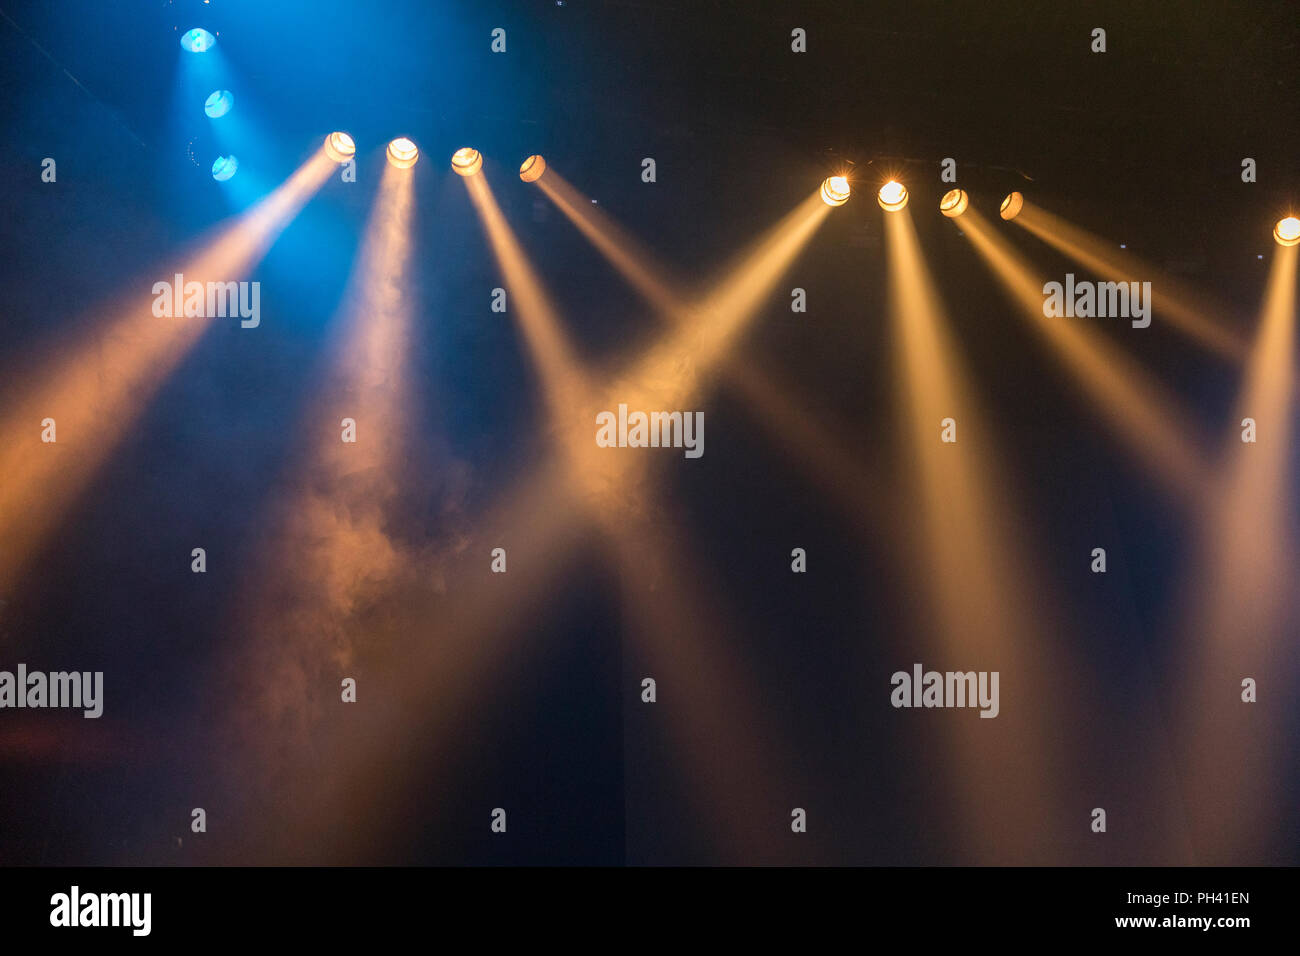 theatre spot lights lighting on stage - Stock Image